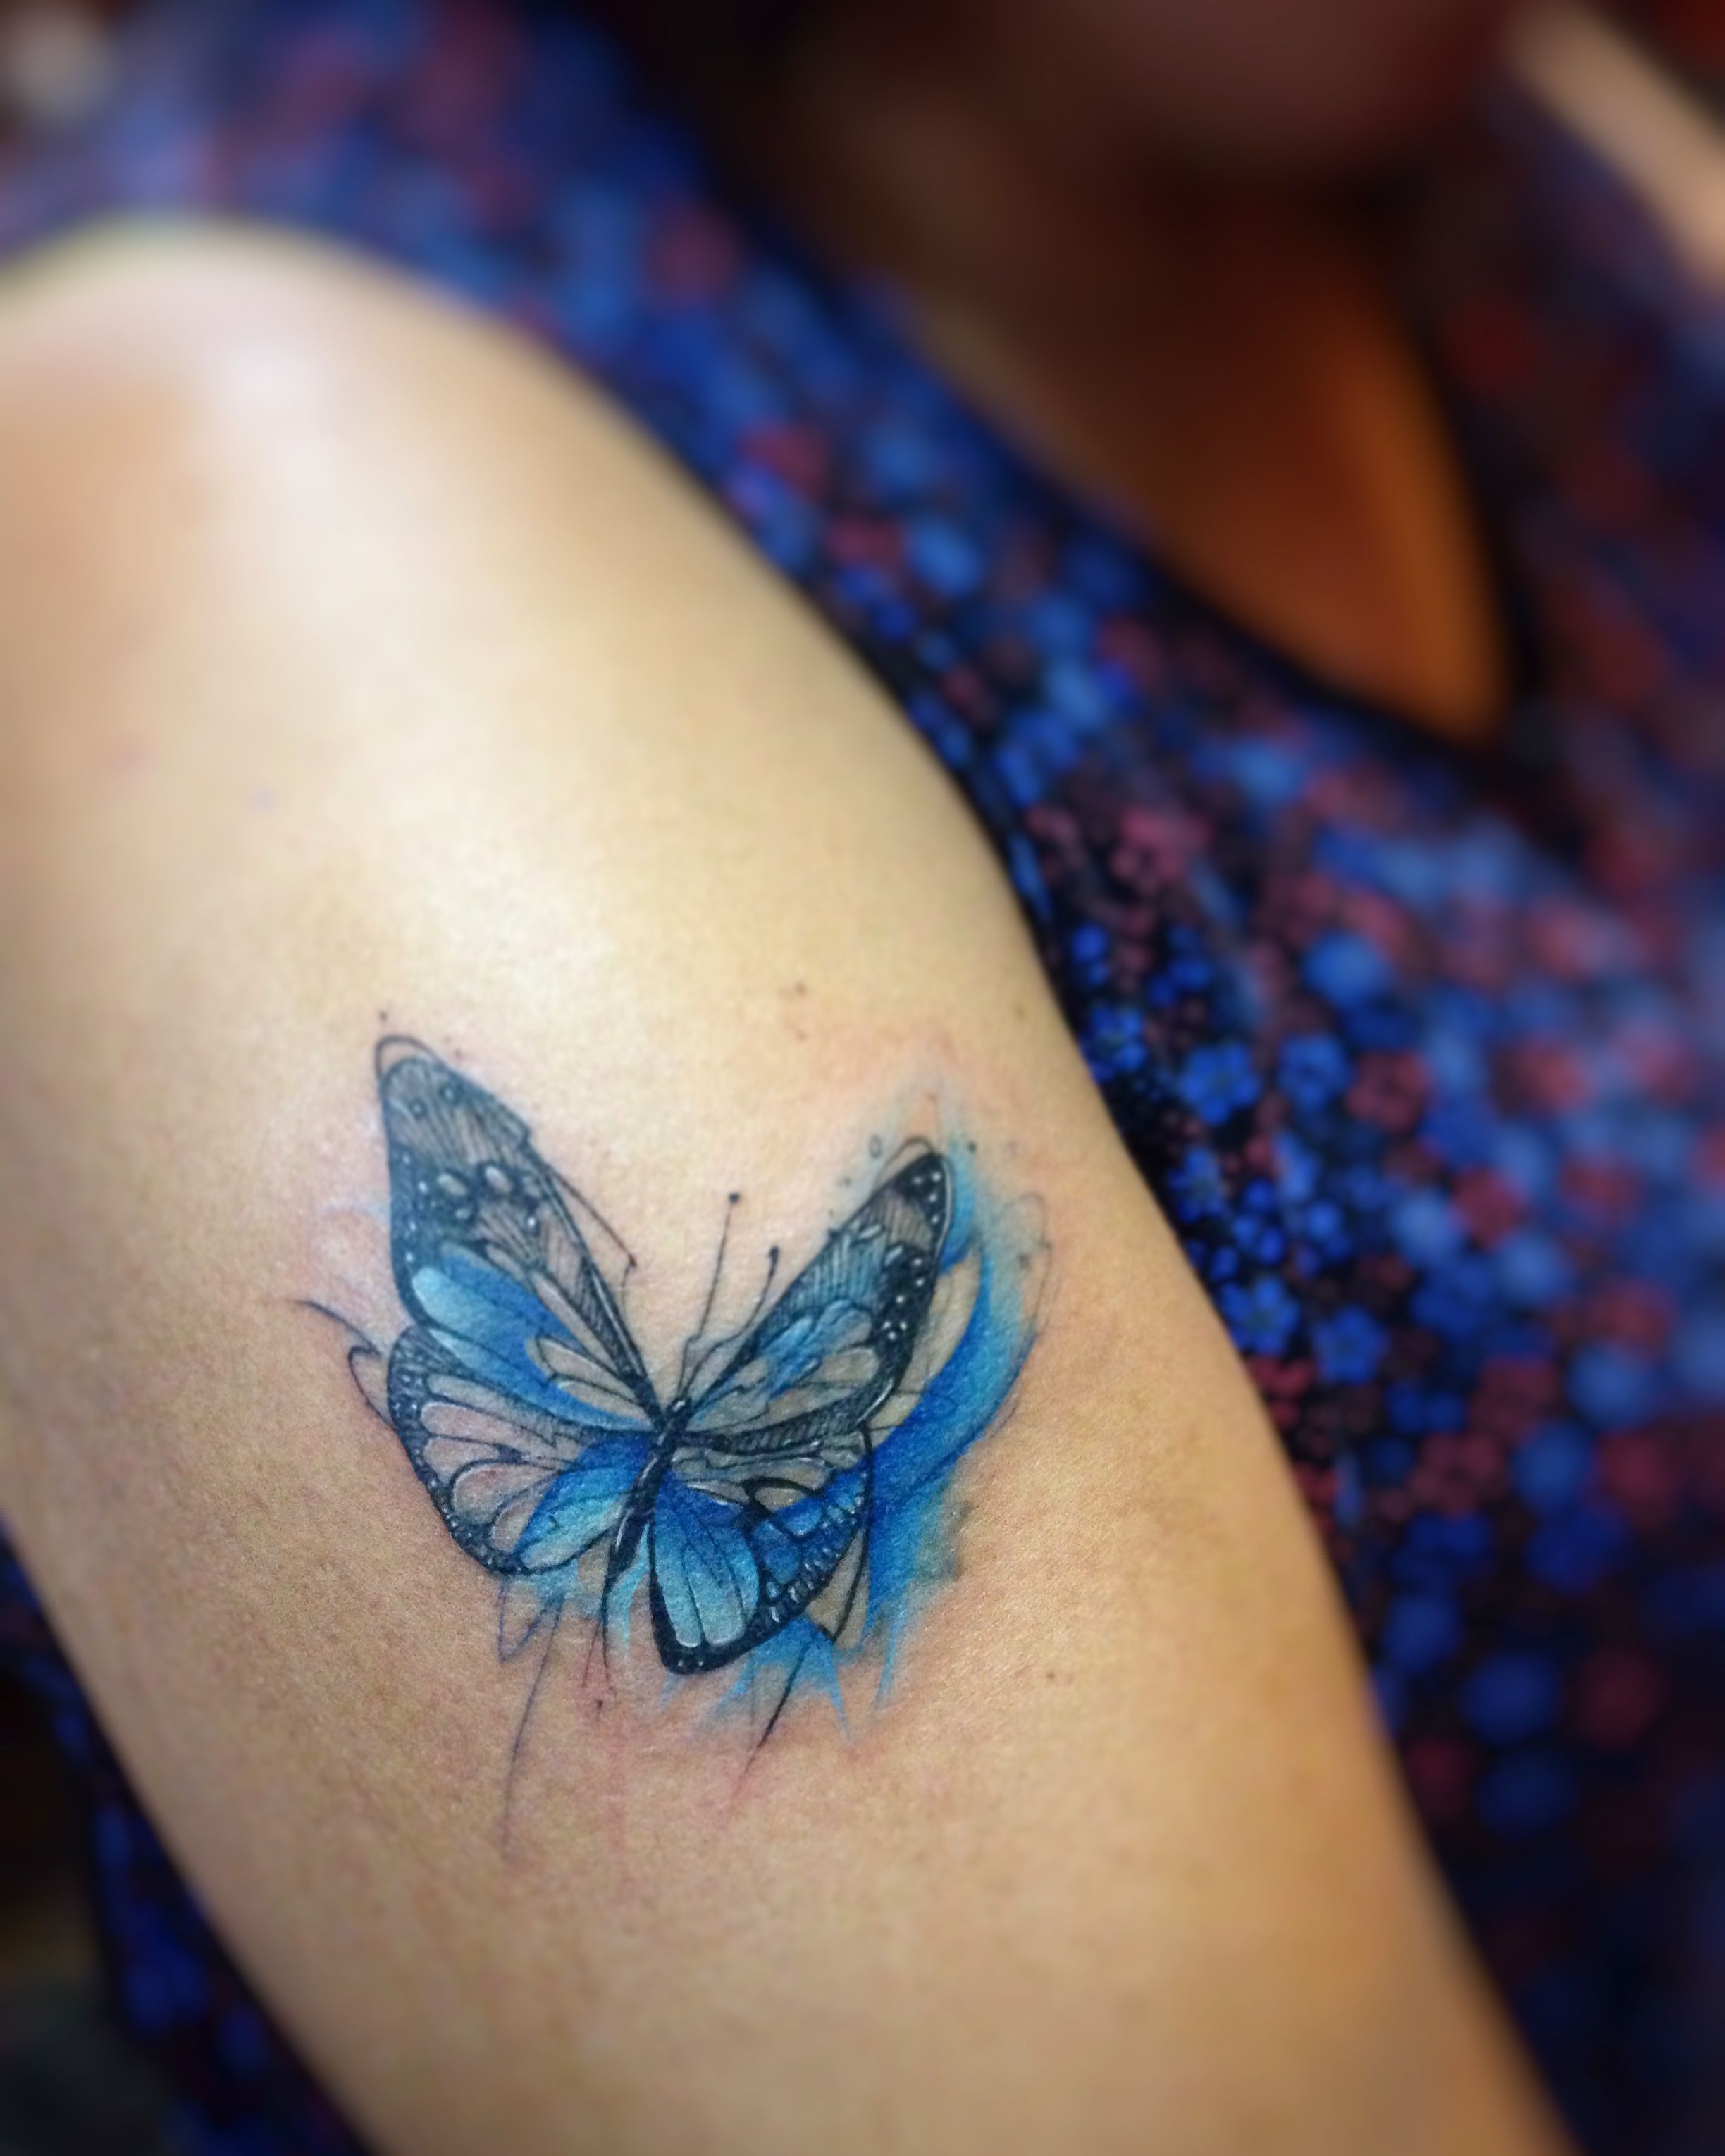 Butterfly Watercolor Tattoo Tattoos Watercolor Tattoo Ink Tattoo